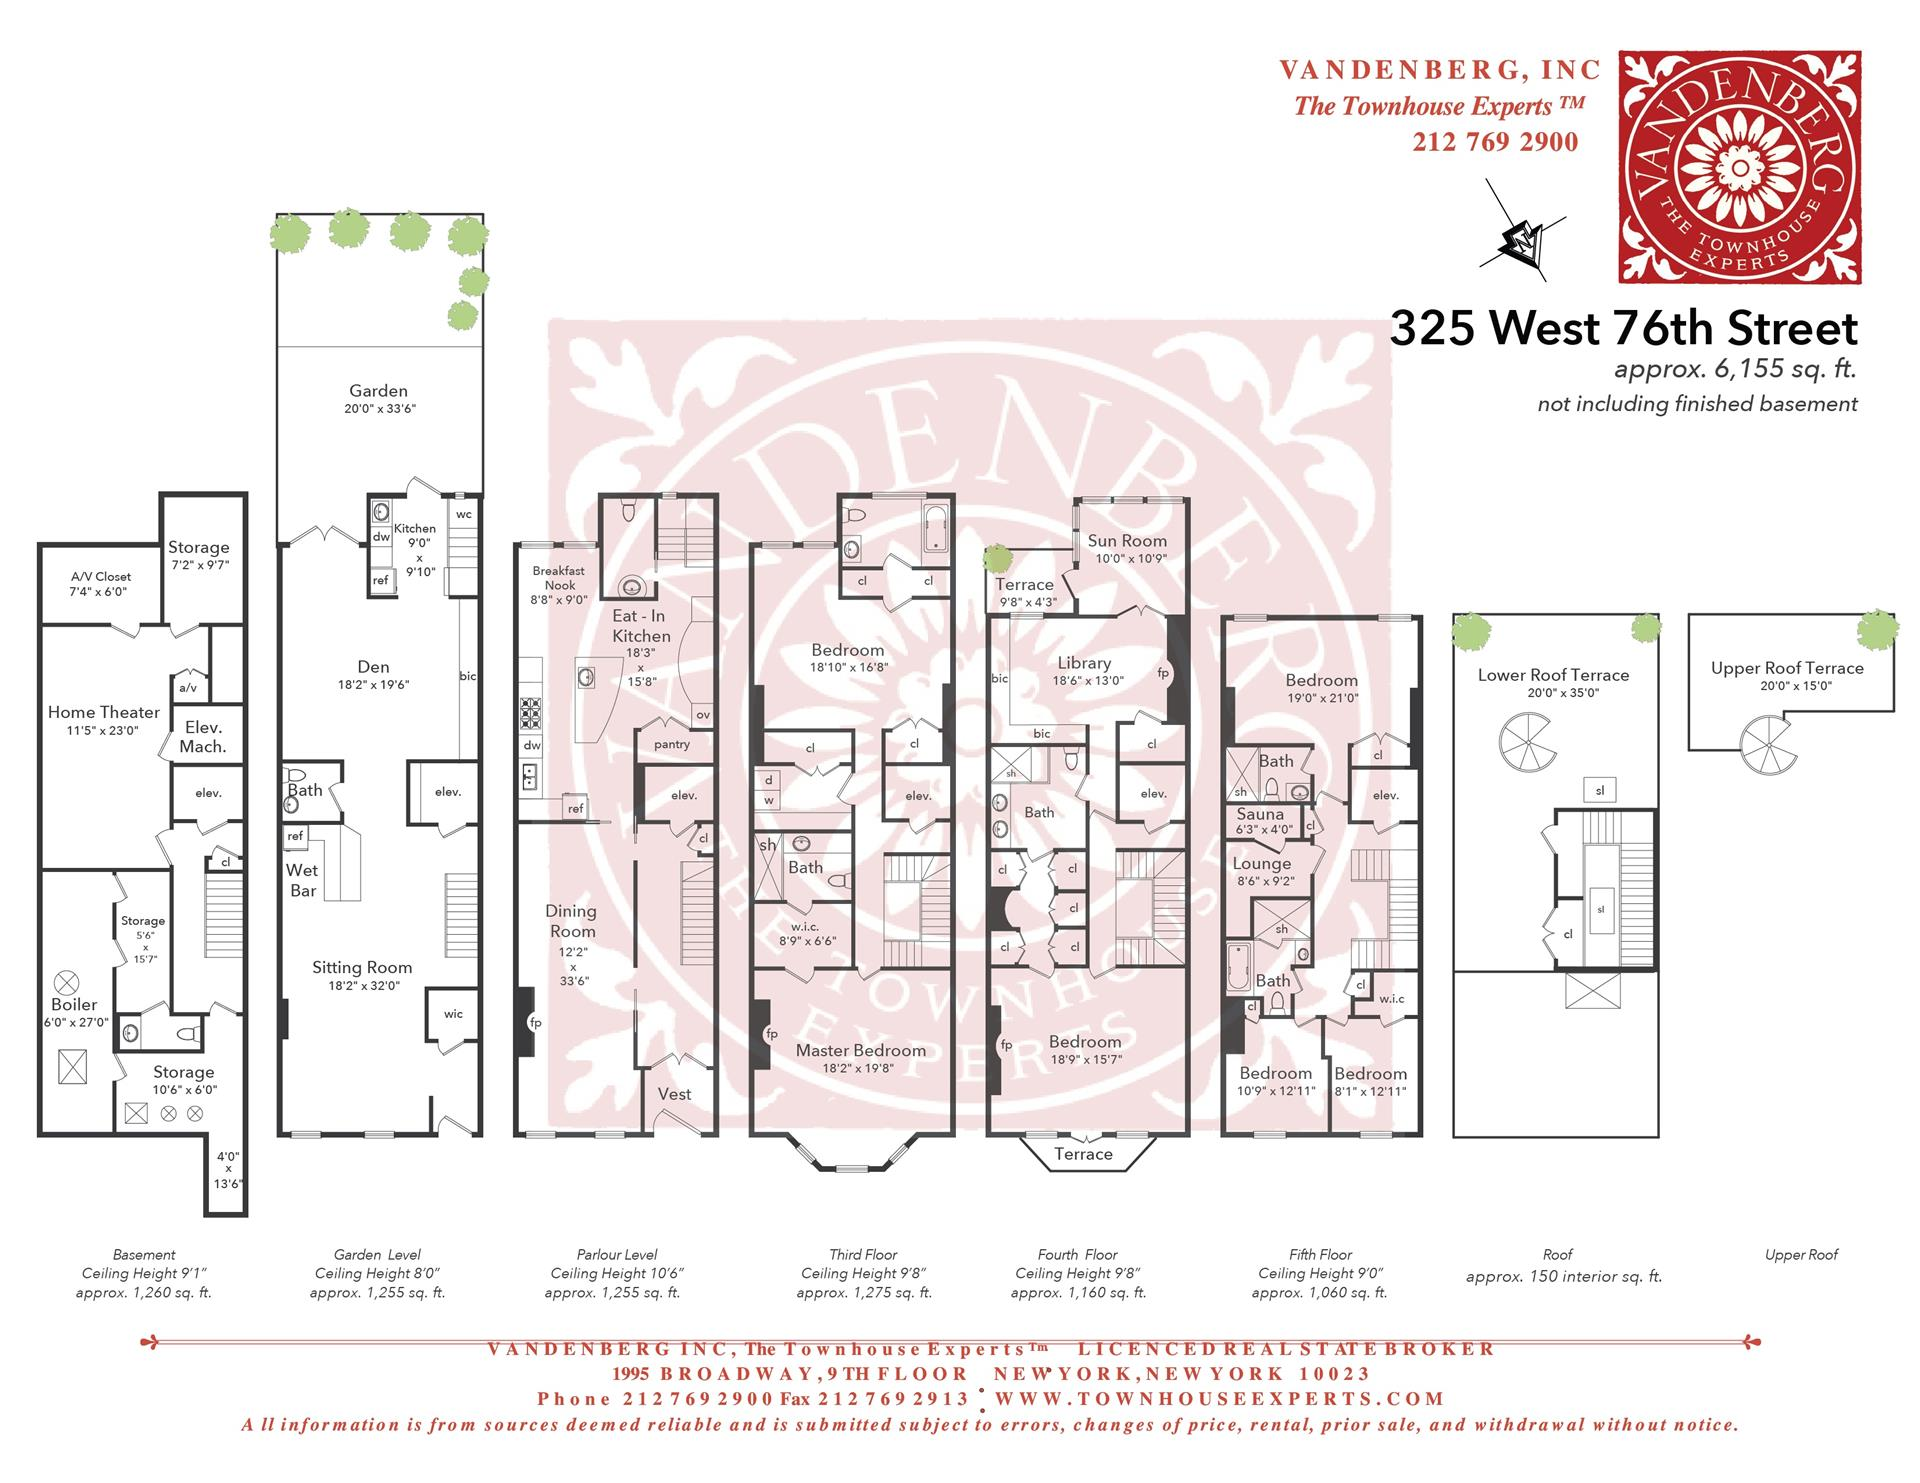 Floor plan of 325 West 76th Street - Upper West Side, New York